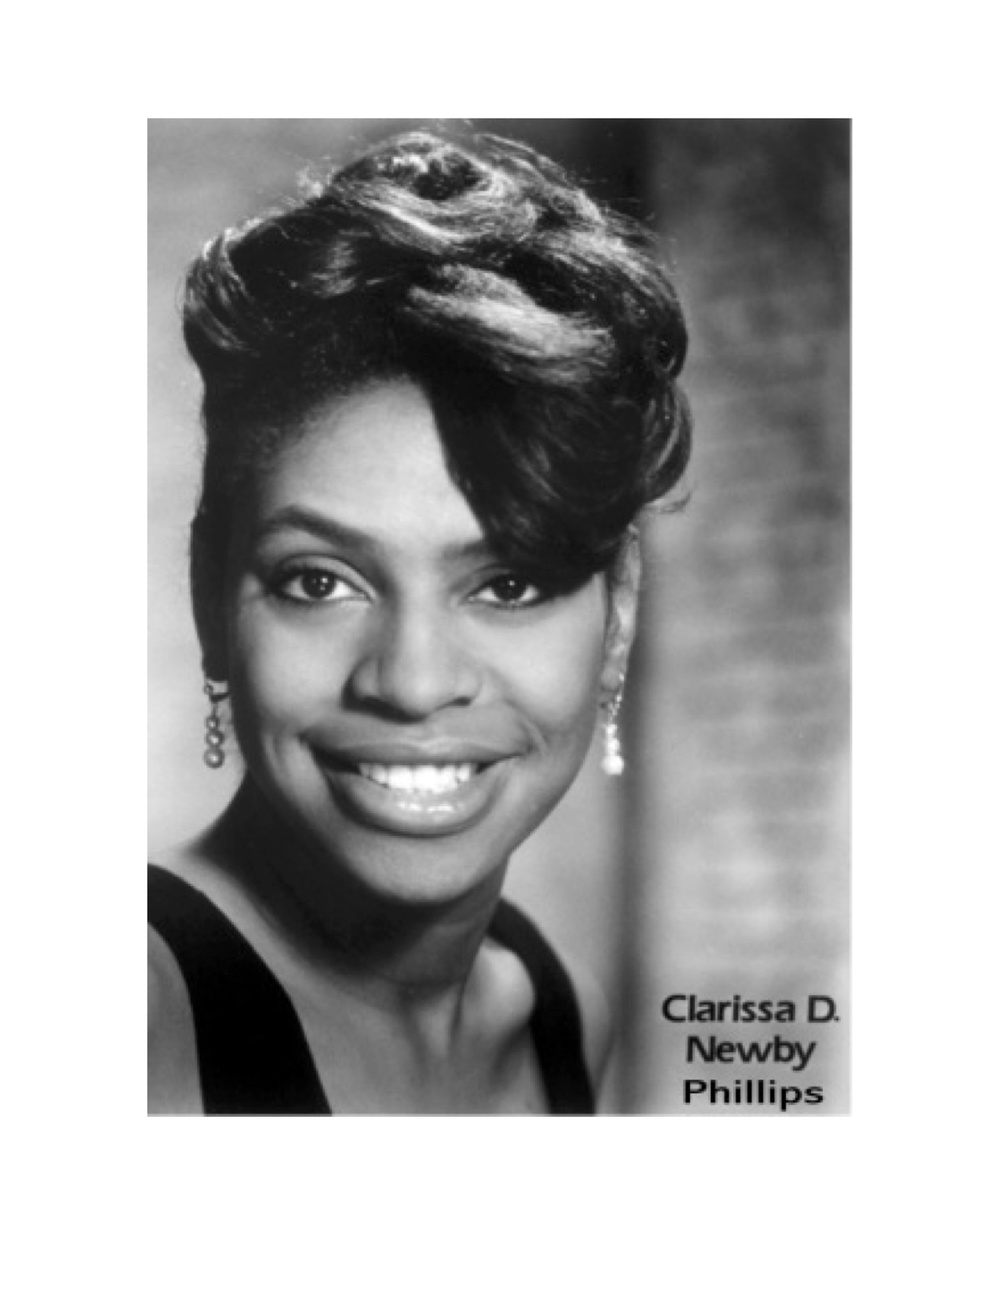 Clarissa Newby Phillips, Dance Department Chair